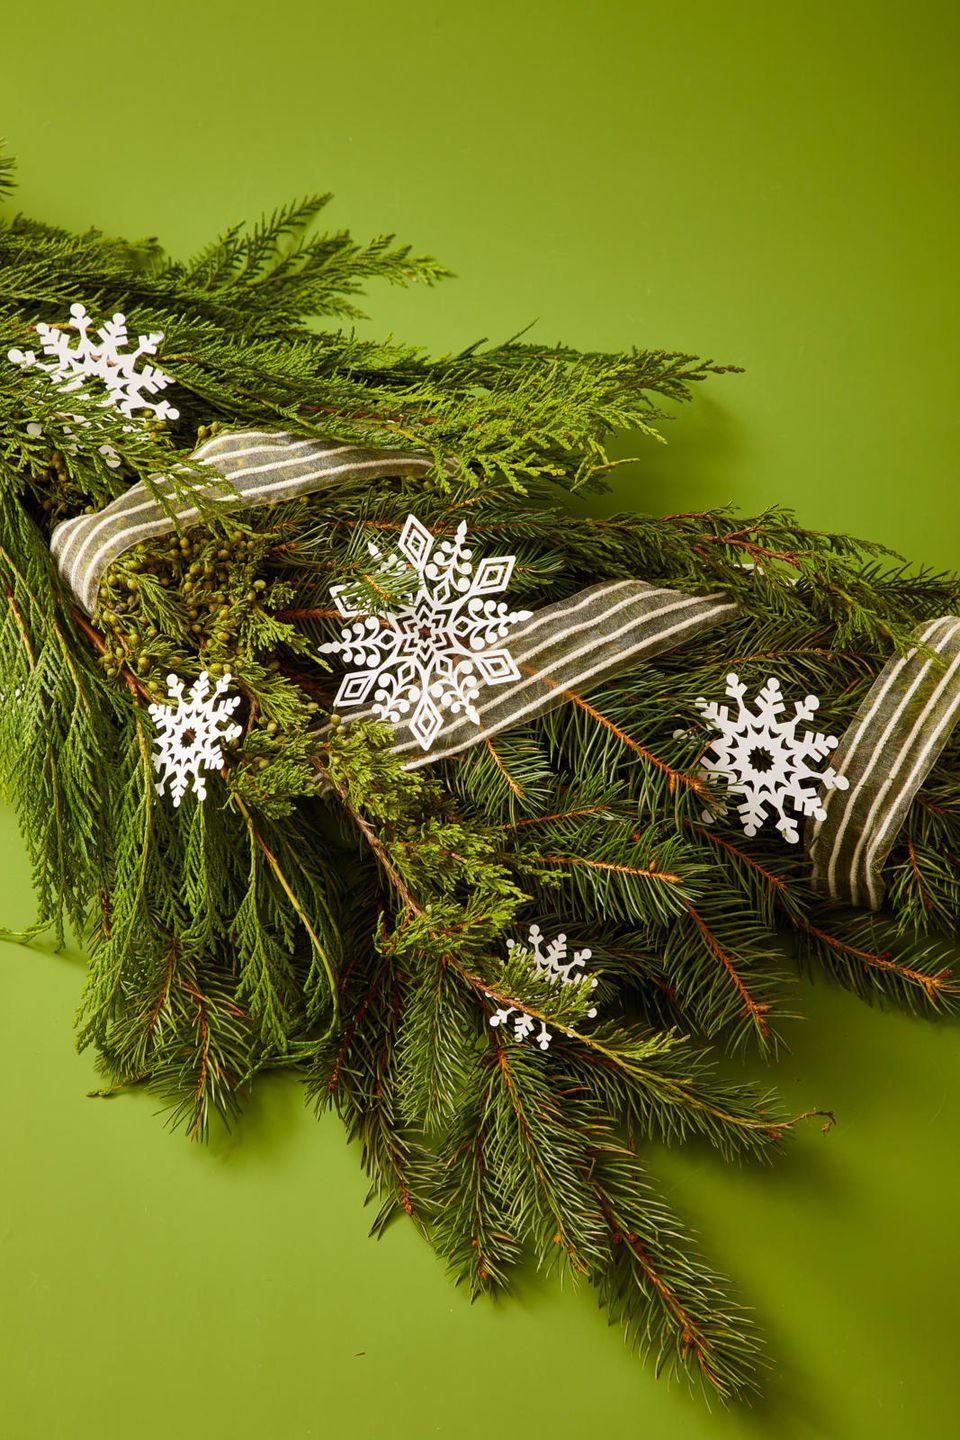 """<p>And if you have any more Cricut patience leftover, use the snowflake template to cut out snowflake-shaped ornaments, which also look nice as gift-toppers. </p><p><strong>RELATED: </strong><a href=""""https://www.goodhousekeeping.com/holidays/christmas-ideas/g4080/clever-diy-christmas-cards/"""" rel=""""nofollow noopener"""" target=""""_blank"""" data-ylk=""""slk:The Best DIY Christmas Cards for the Most Meaningful Holiday Notes Ever"""" class=""""link rapid-noclick-resp"""">The Best DIY Christmas Cards for the Most Meaningful Holiday Notes Ever</a></p>"""